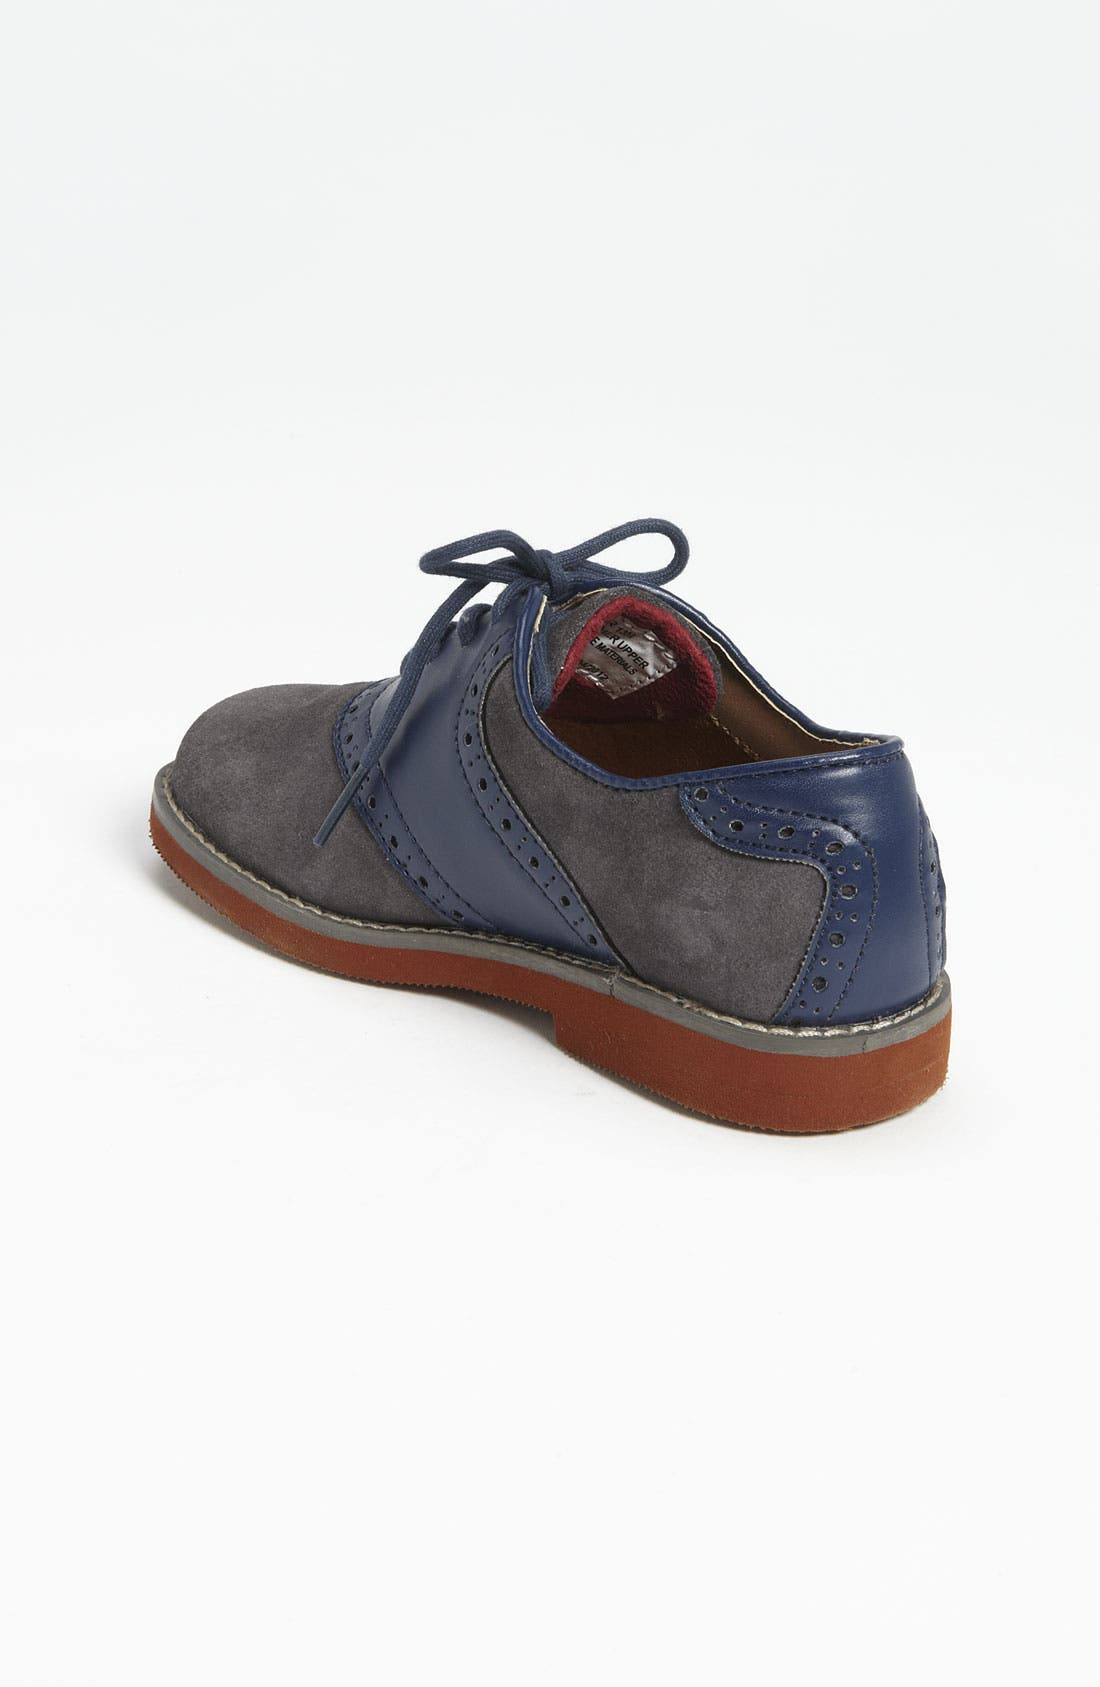 Alternate Image 2  - Florsheim 'Kennett' Oxford (Toddler, Little Kid & Big Kid)